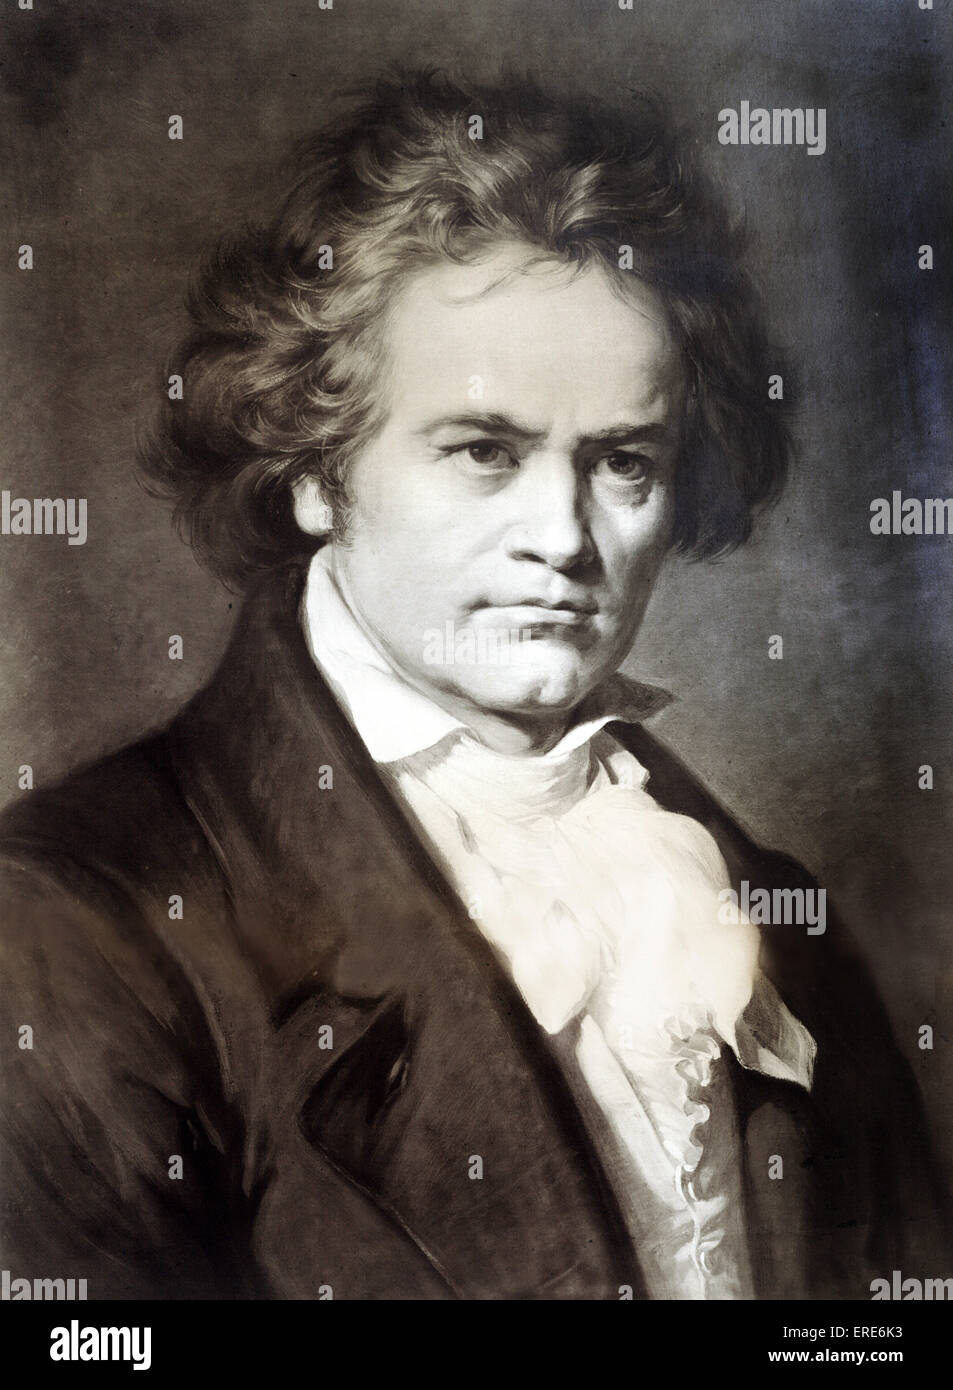 Ludwig van Beethoven, composer.   Sepia photograph by Bruckmann after a painting by Carl Jäger, 1870. German - Stock Image